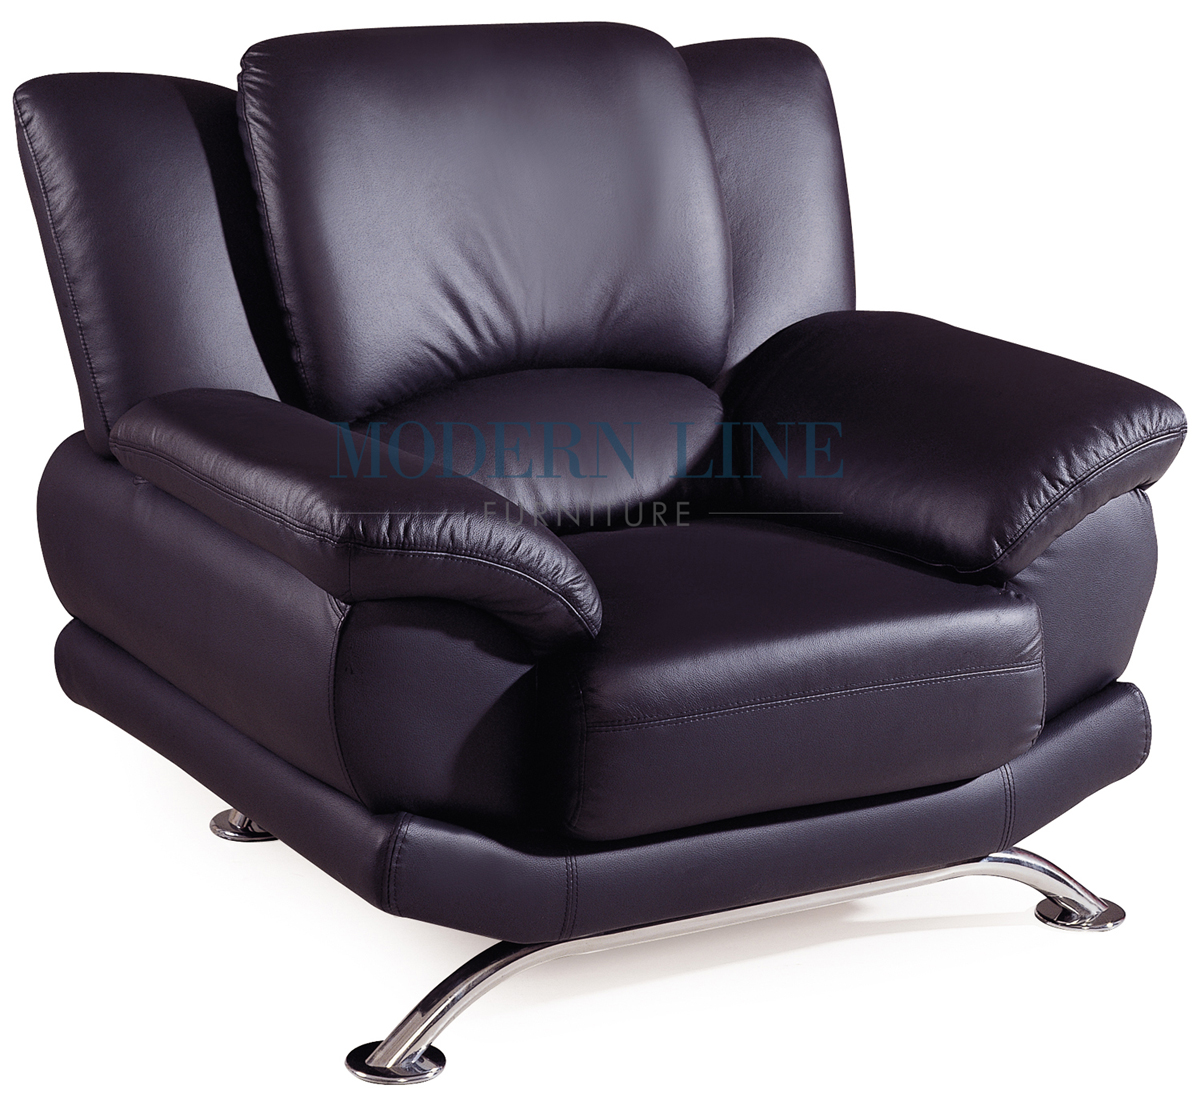 popular 225 list modern leather chairs our house designs leather chair leather chair design classic